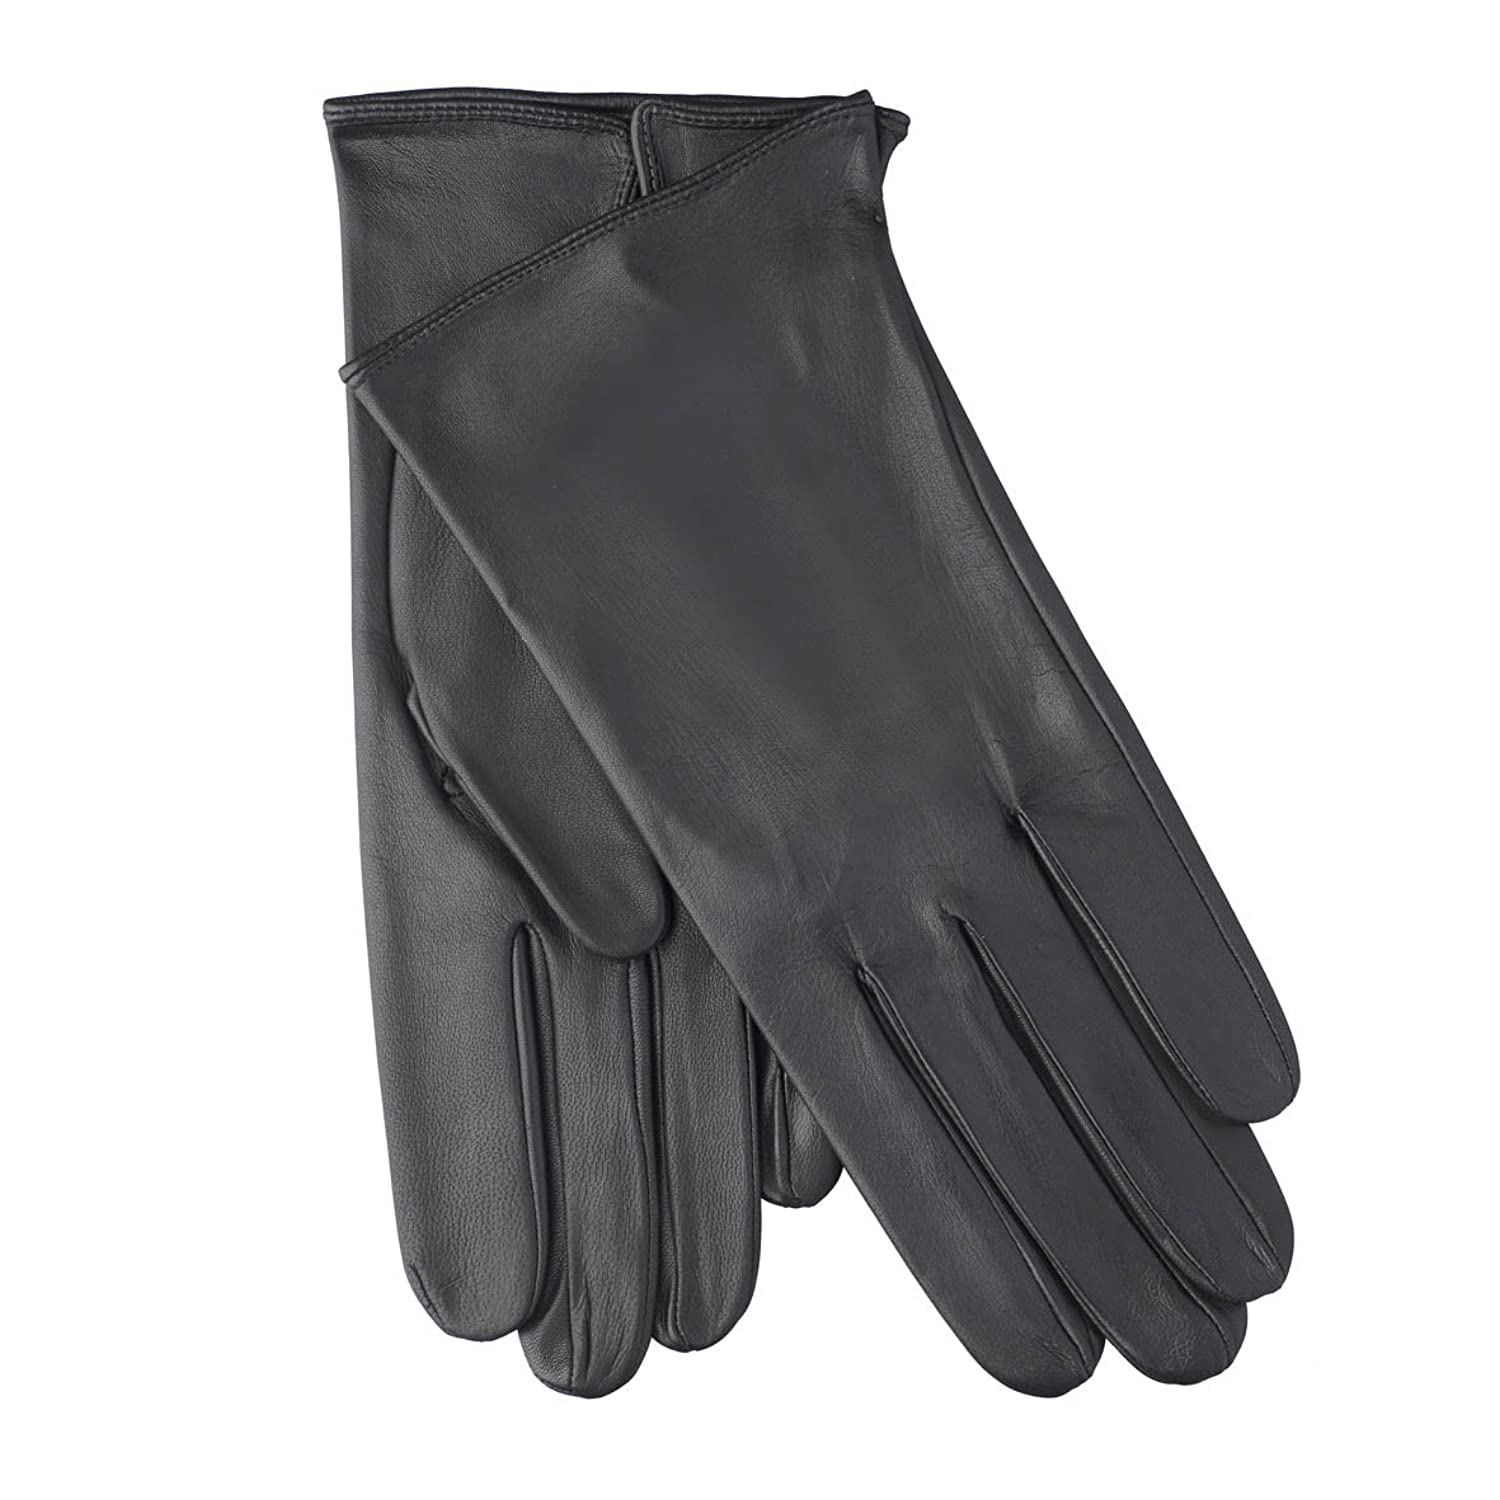 James bond leather driving gloves - Dents Mens James Bond Skyfall Leather Gloves 5 1007 Black At Amazon Men S Clothing Store